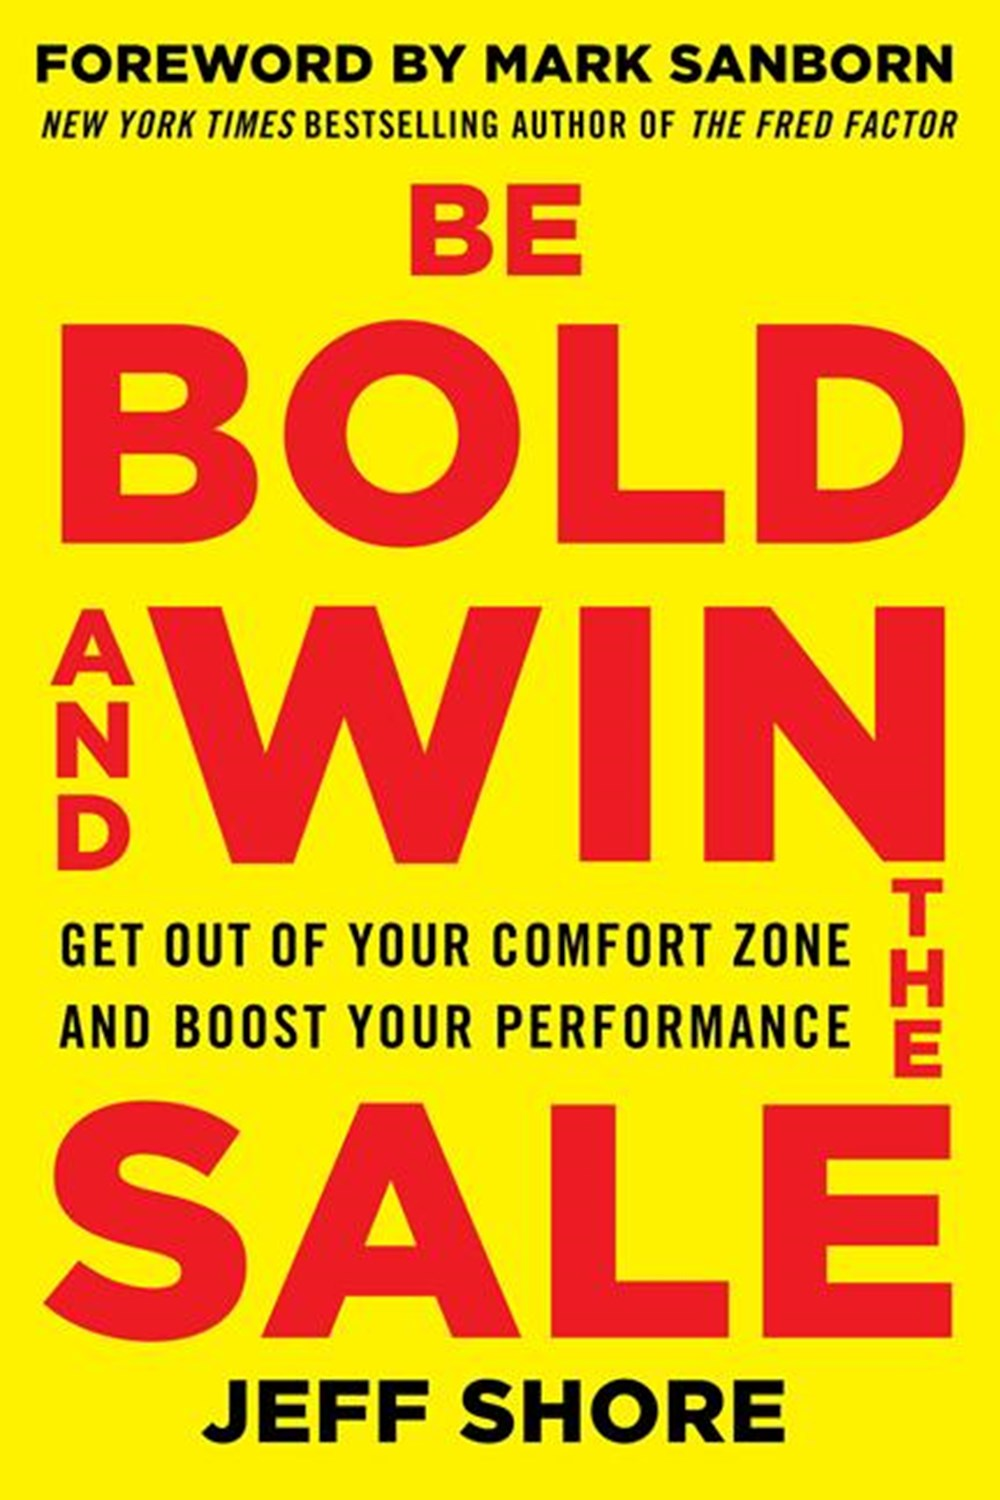 Be Bold and Win the Sale Get Out of Your Comfort Zone and Boost Your Performance